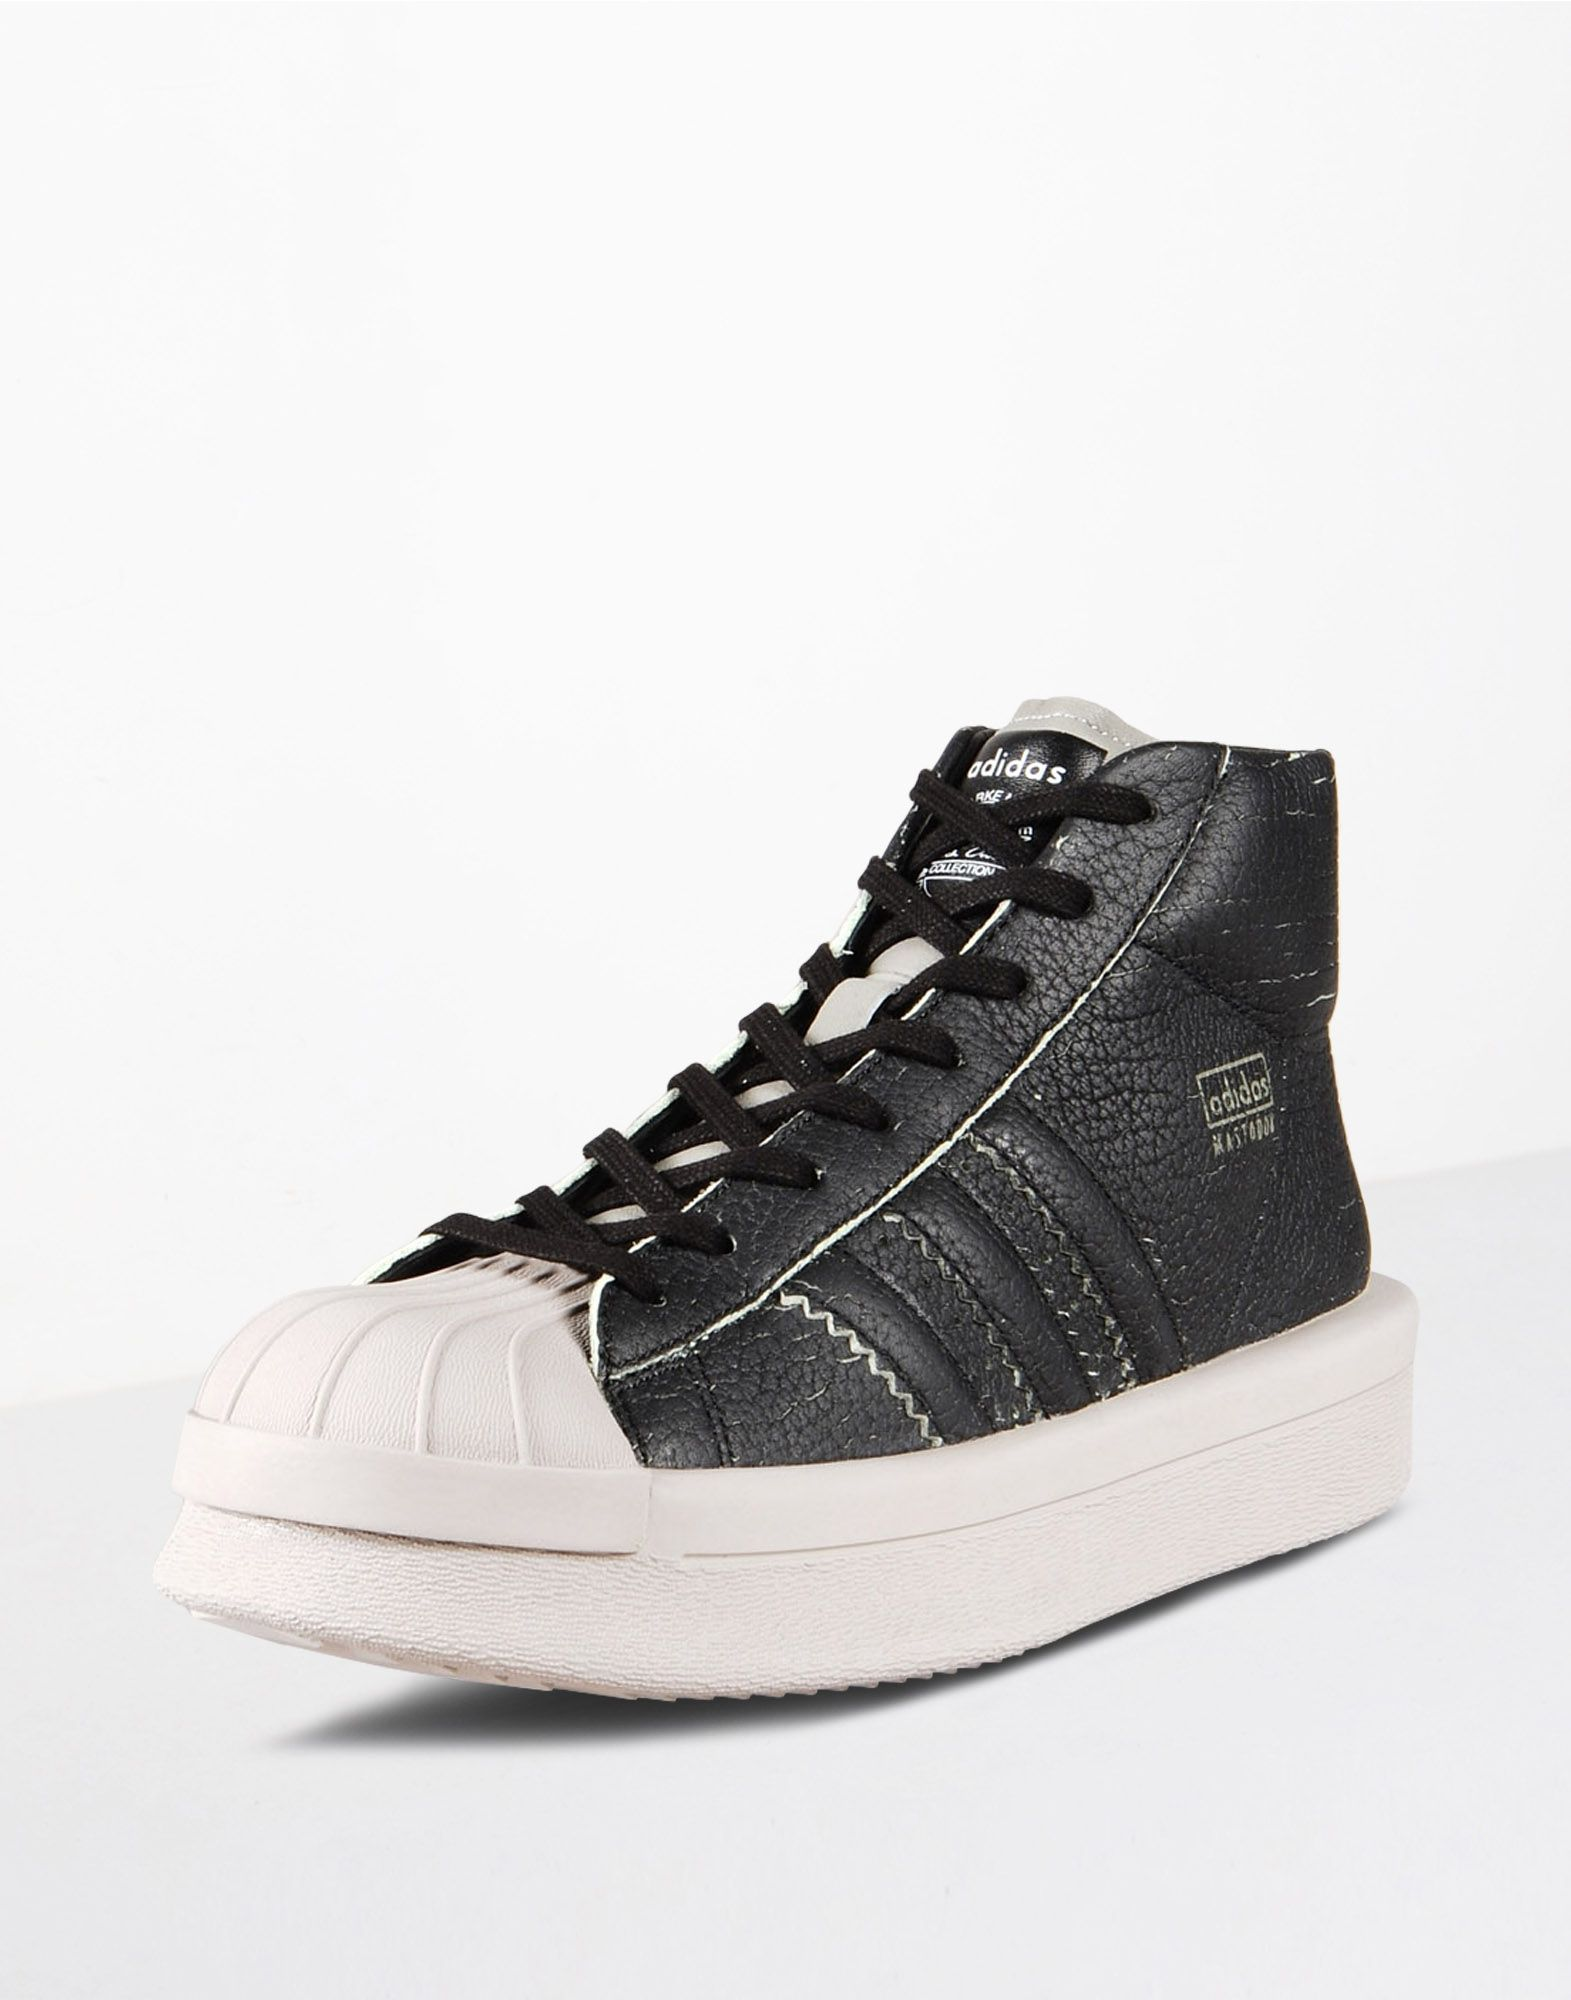 Check out the Adidas By RO MASTODON PRO MODEL Trainers for Women and order  today on the official Adidas online store.